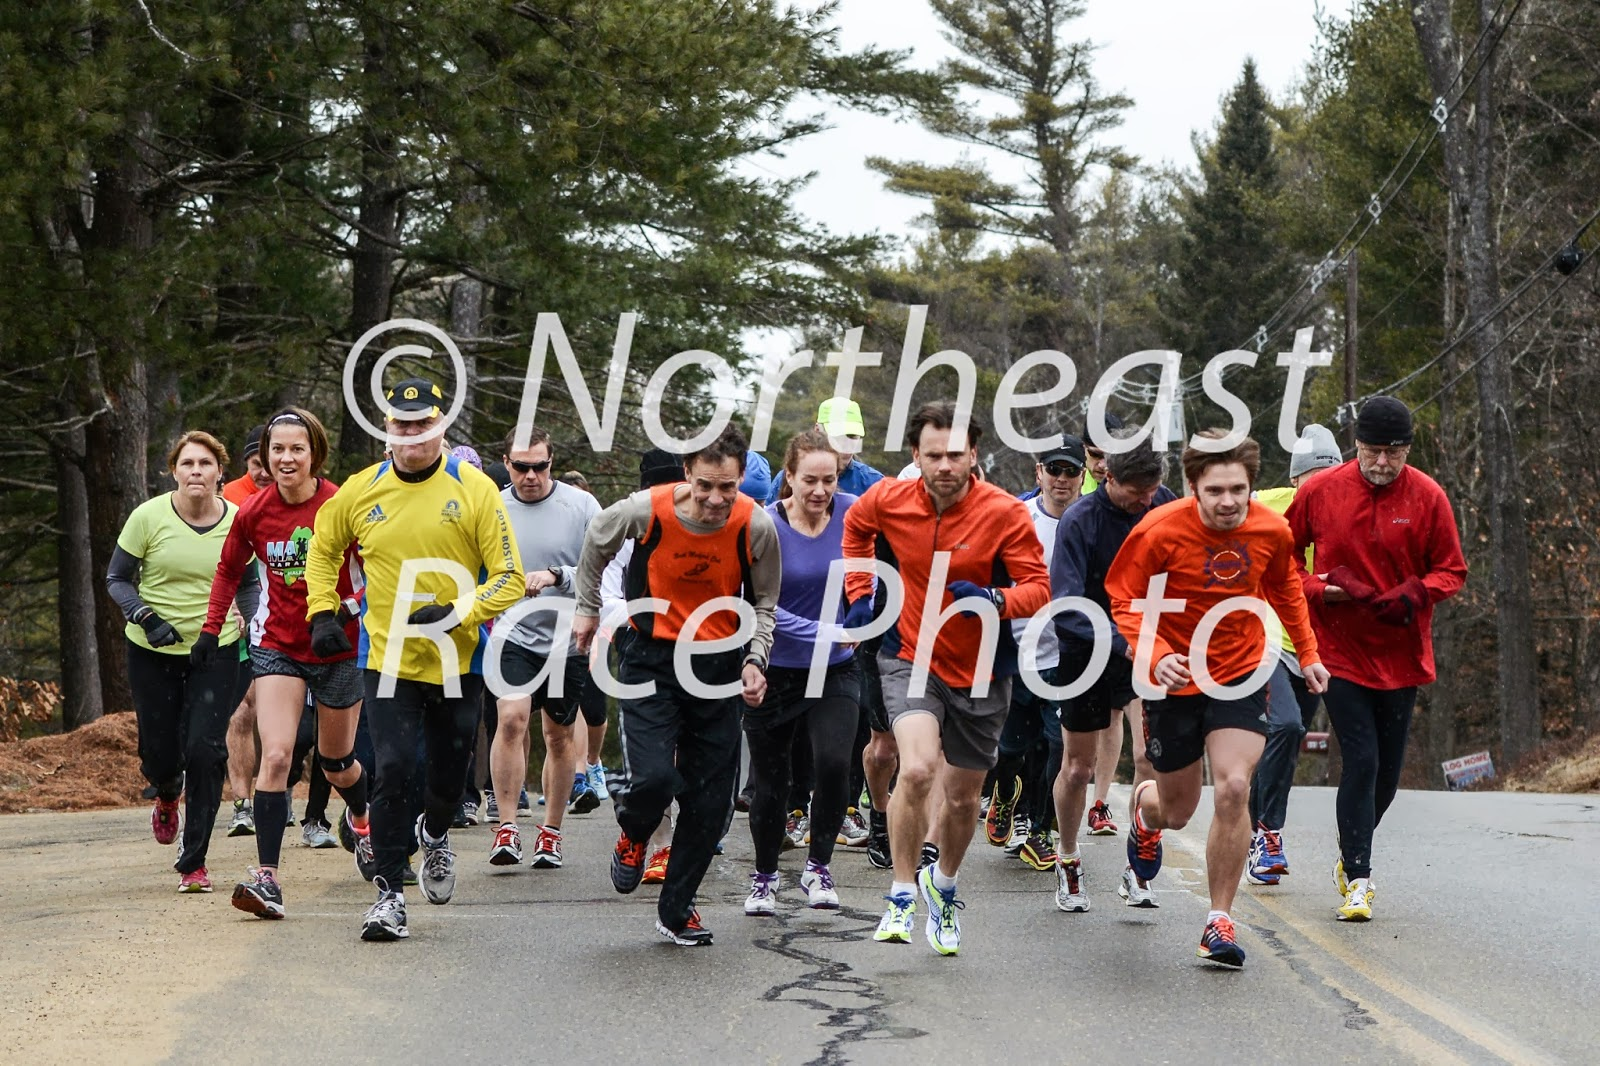 start of the 2014 Tom and Ron Boone Memorial 10K Road Race in Gardner, MA